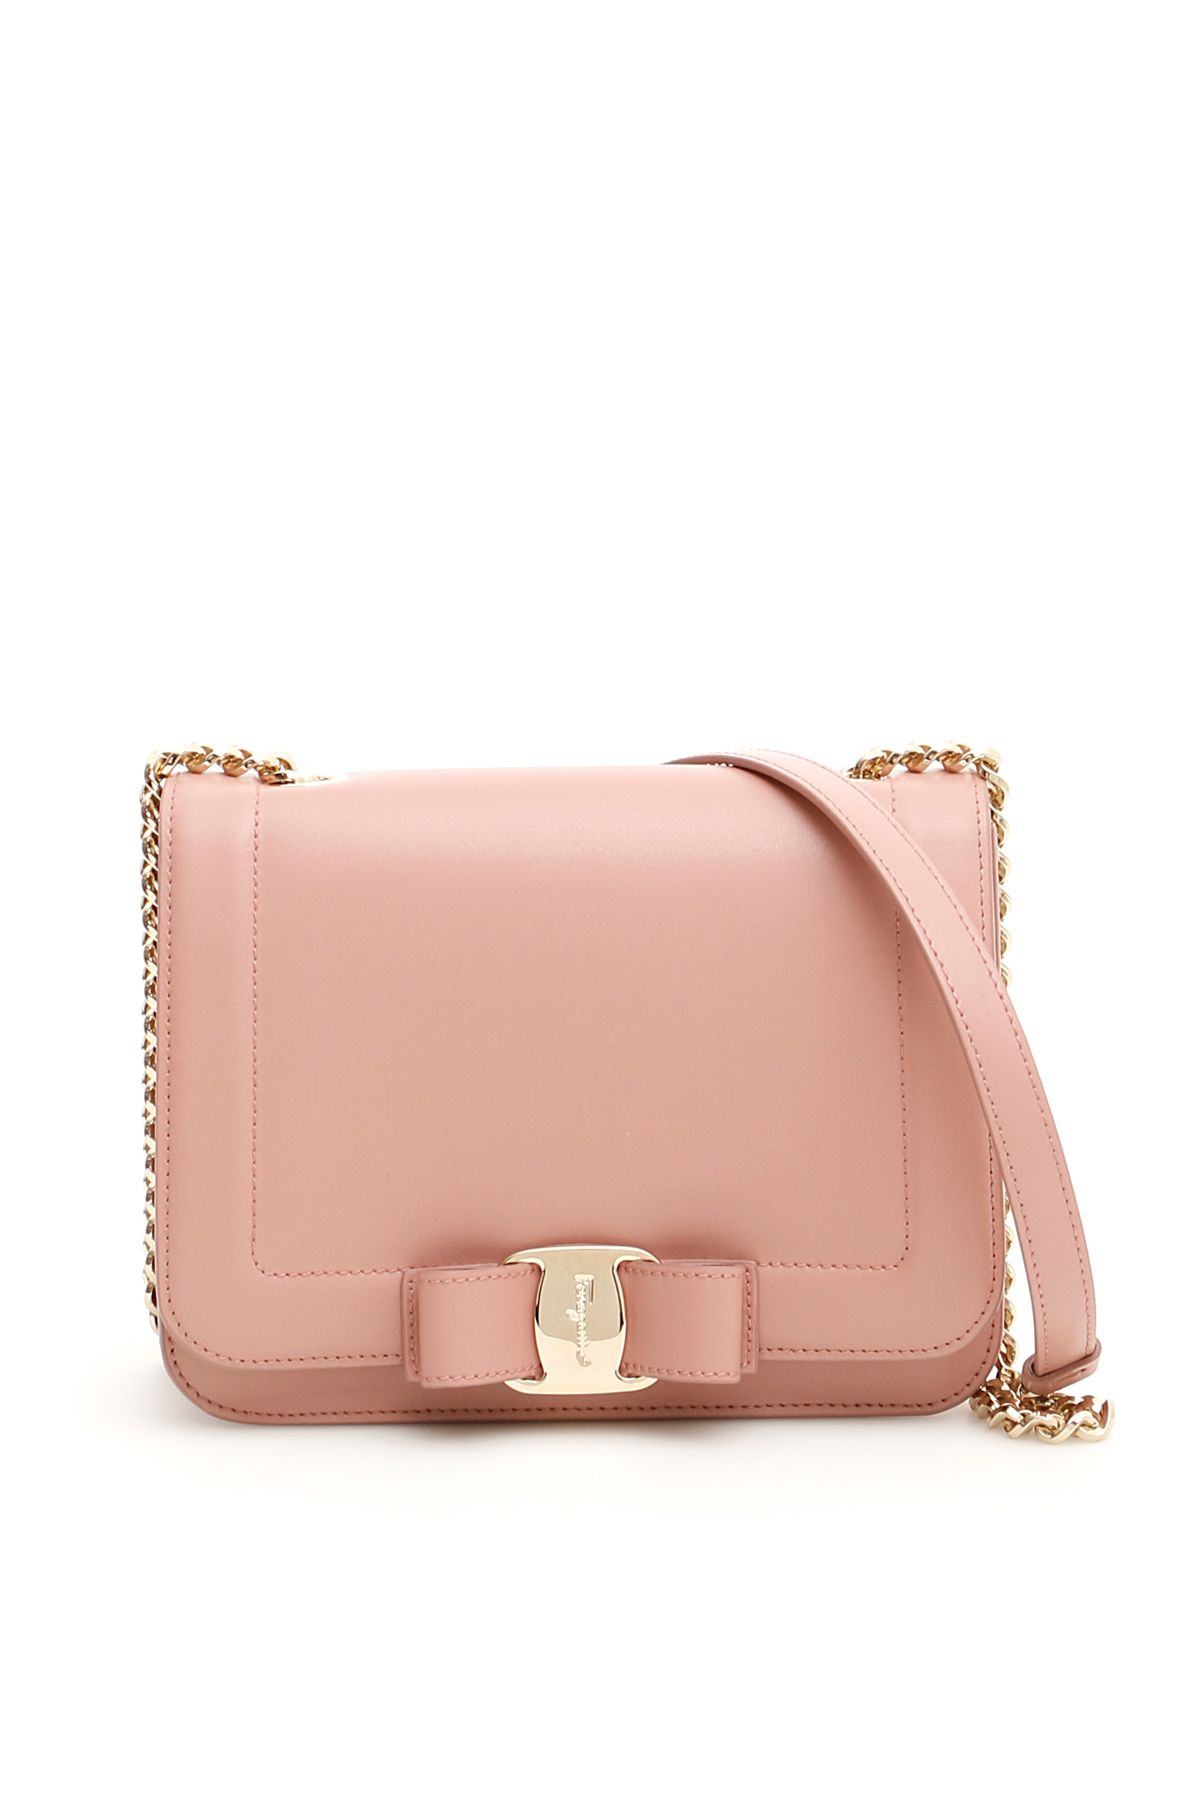 d72e3aeee2dd Salvatore Ferragamo Leather Vara Rainbow Bag In Pink